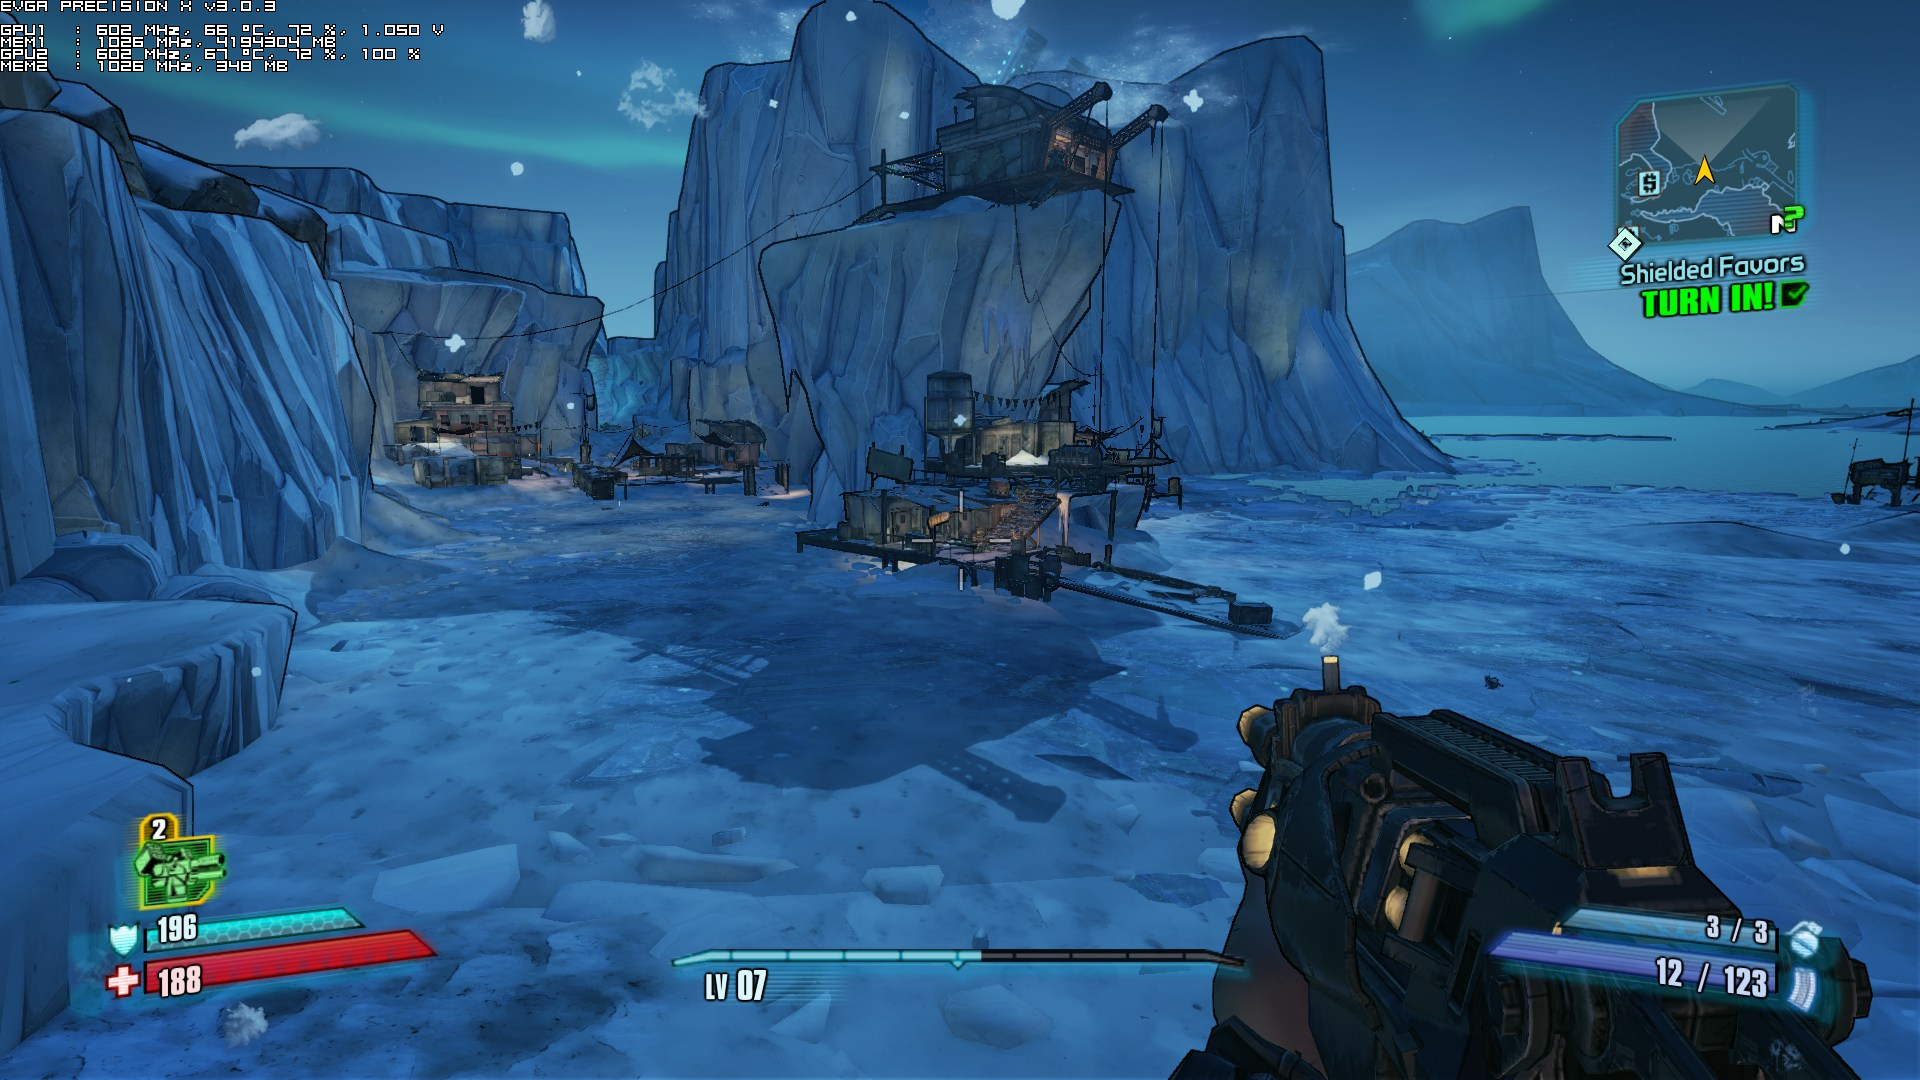 Borderlands 2 - PC Performance Analysis - DSOGaming